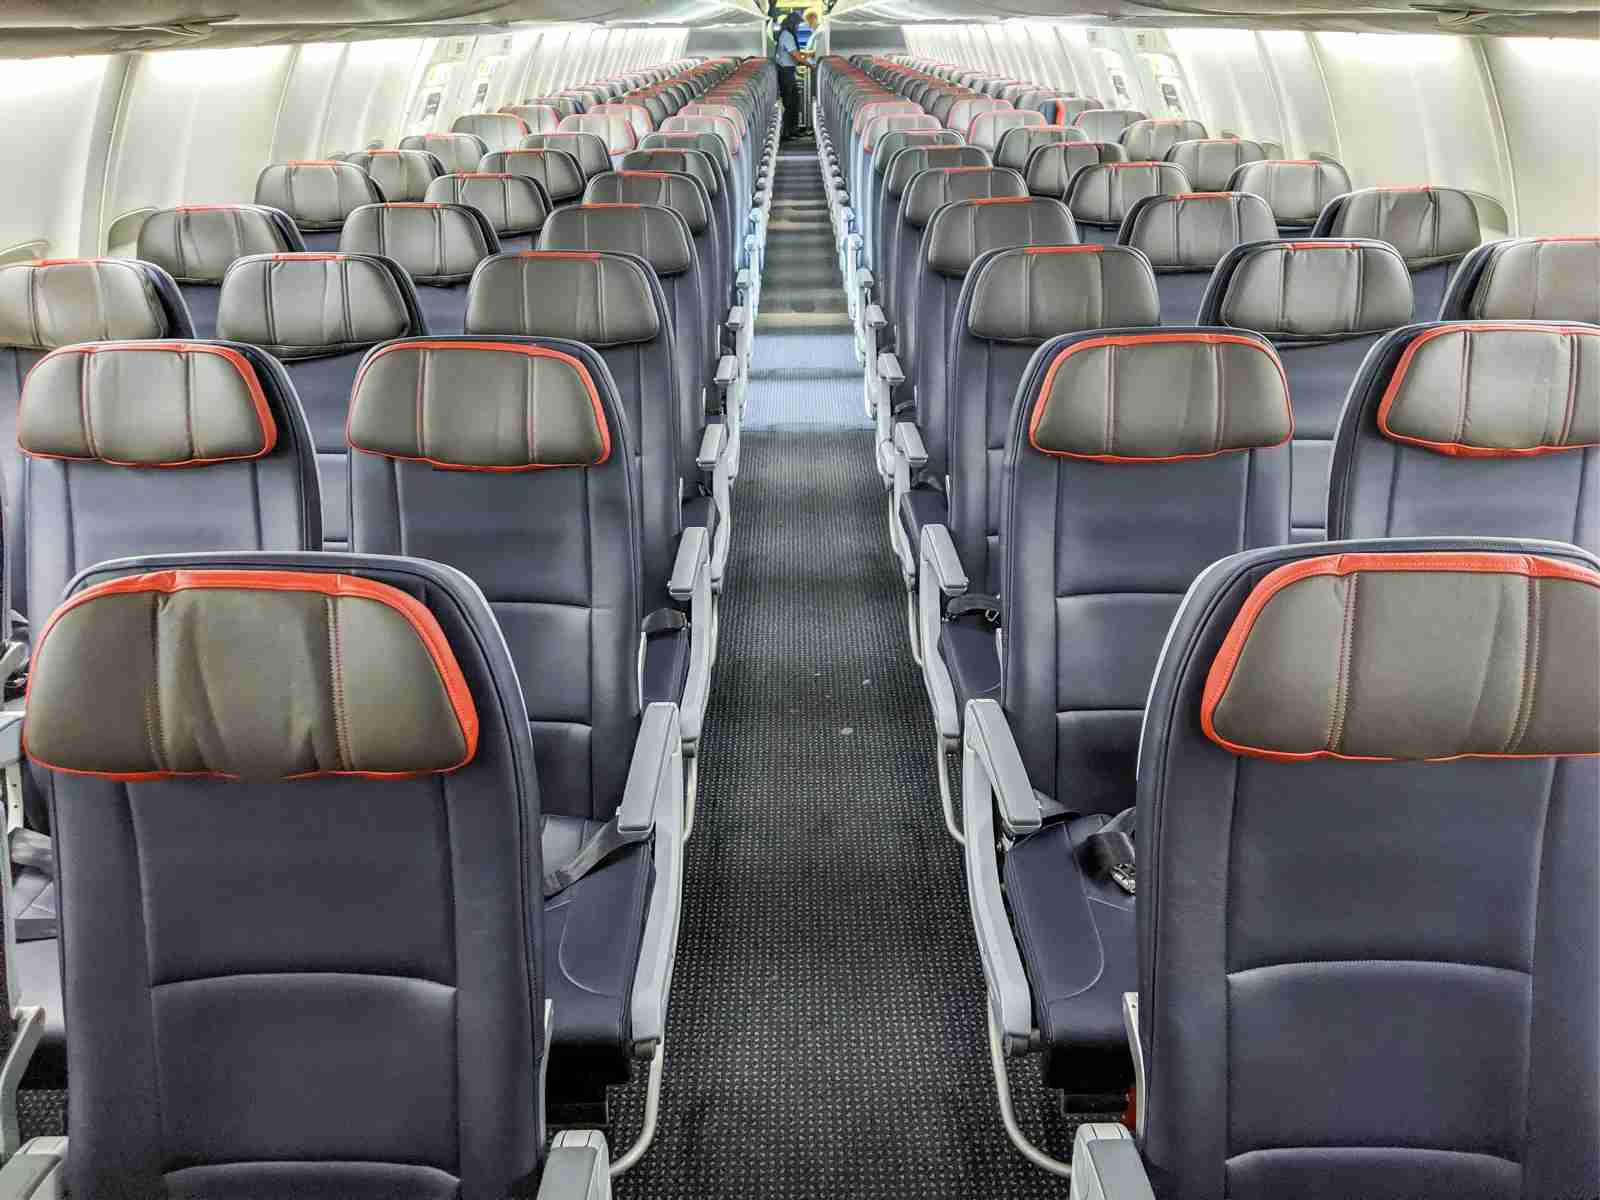 Any economy seat could potentially be reserved for elites and full-fare passengers. (Photo by JT Genter/The Points Guy)